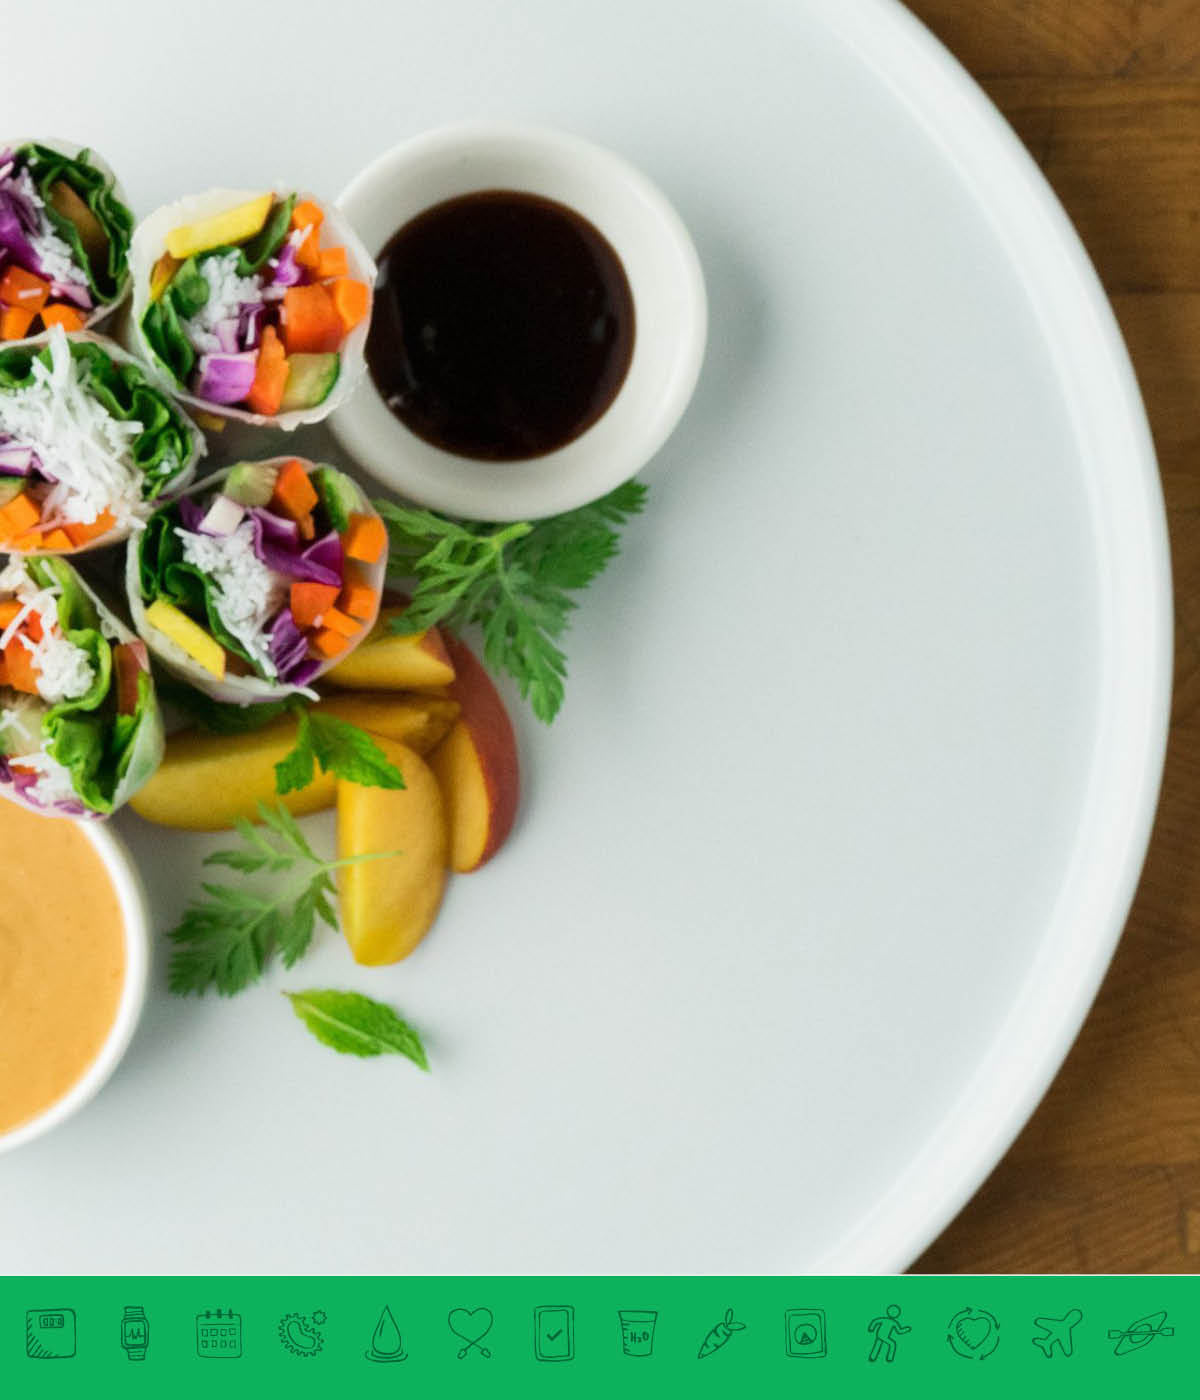 MSPrebiotic® Vegan Summer Rolls with Peanut Sauce